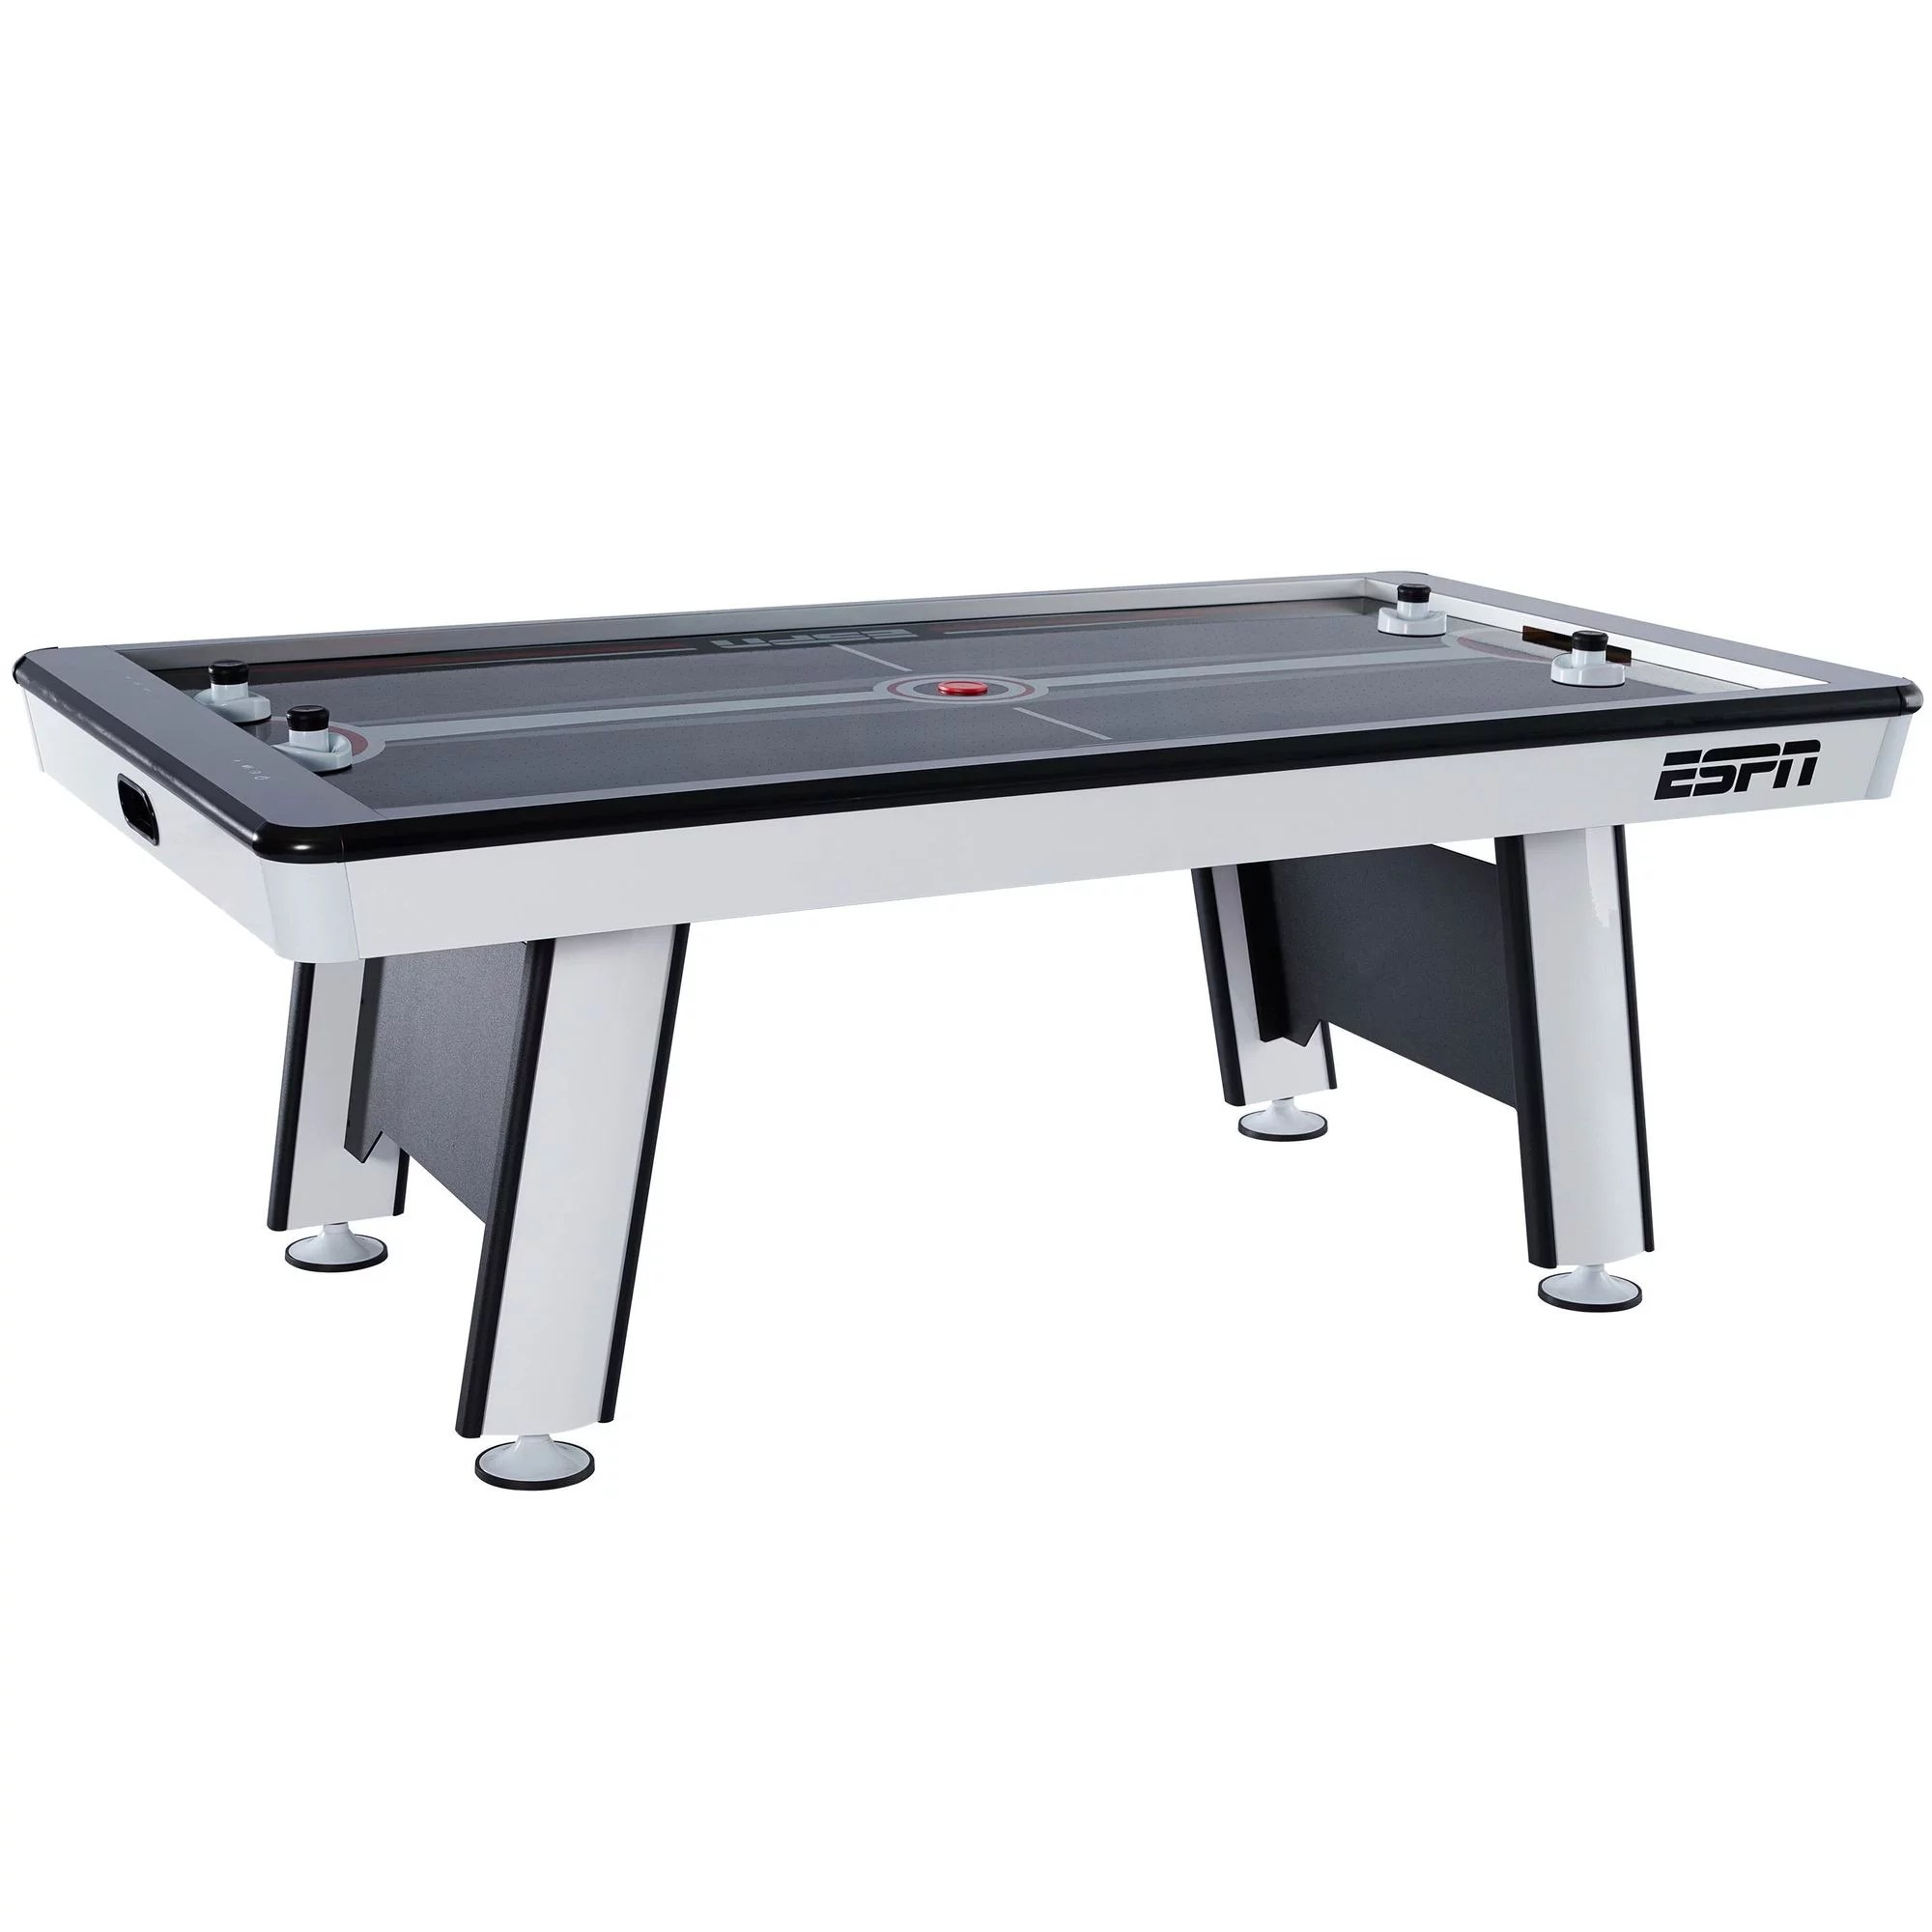 Garage Door Hockey Screen Espn Premium 84 Inch Air Powered Hockey Table With Led Touch Screen Scorer Gray 7 Ft